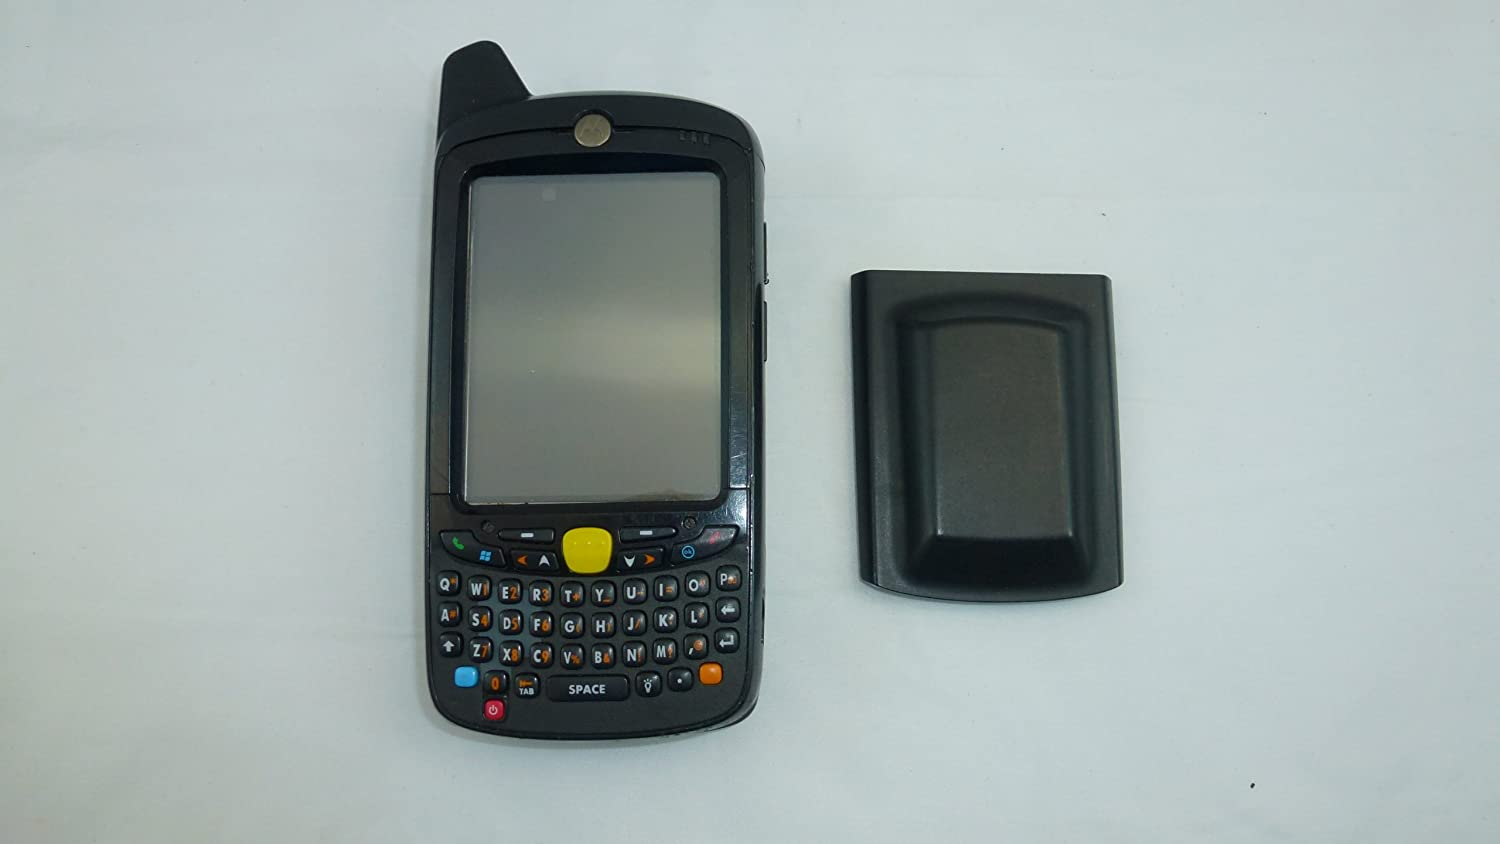 Motorola MC55 p n MC5574 PKCDUQRA9WR and Data Cable KIT WLAN 802.11a b g 1D 2D Hybrid Crosshair Scanner GSM Cellular Integrated GPS QWERTY Keypad Windows Mobile 6 Pro 128MB 512MB Bluetooth